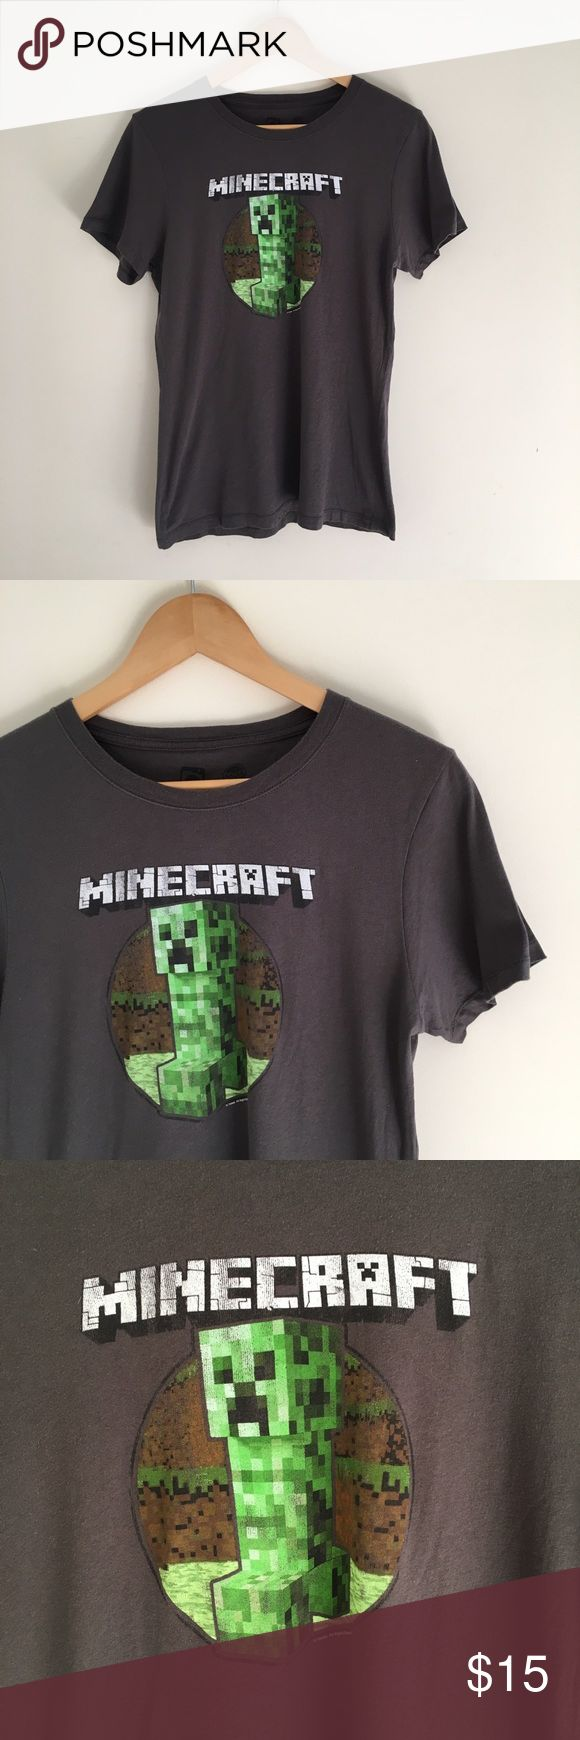 Dark gray/ Black Minecraft t-shirt Dark gray/ Black Minecraft t-shirt. Size XL. Great condition little sign of wear. Price firm but can be bundled for discounts Shirts & Tops Tees - Short Sleeve